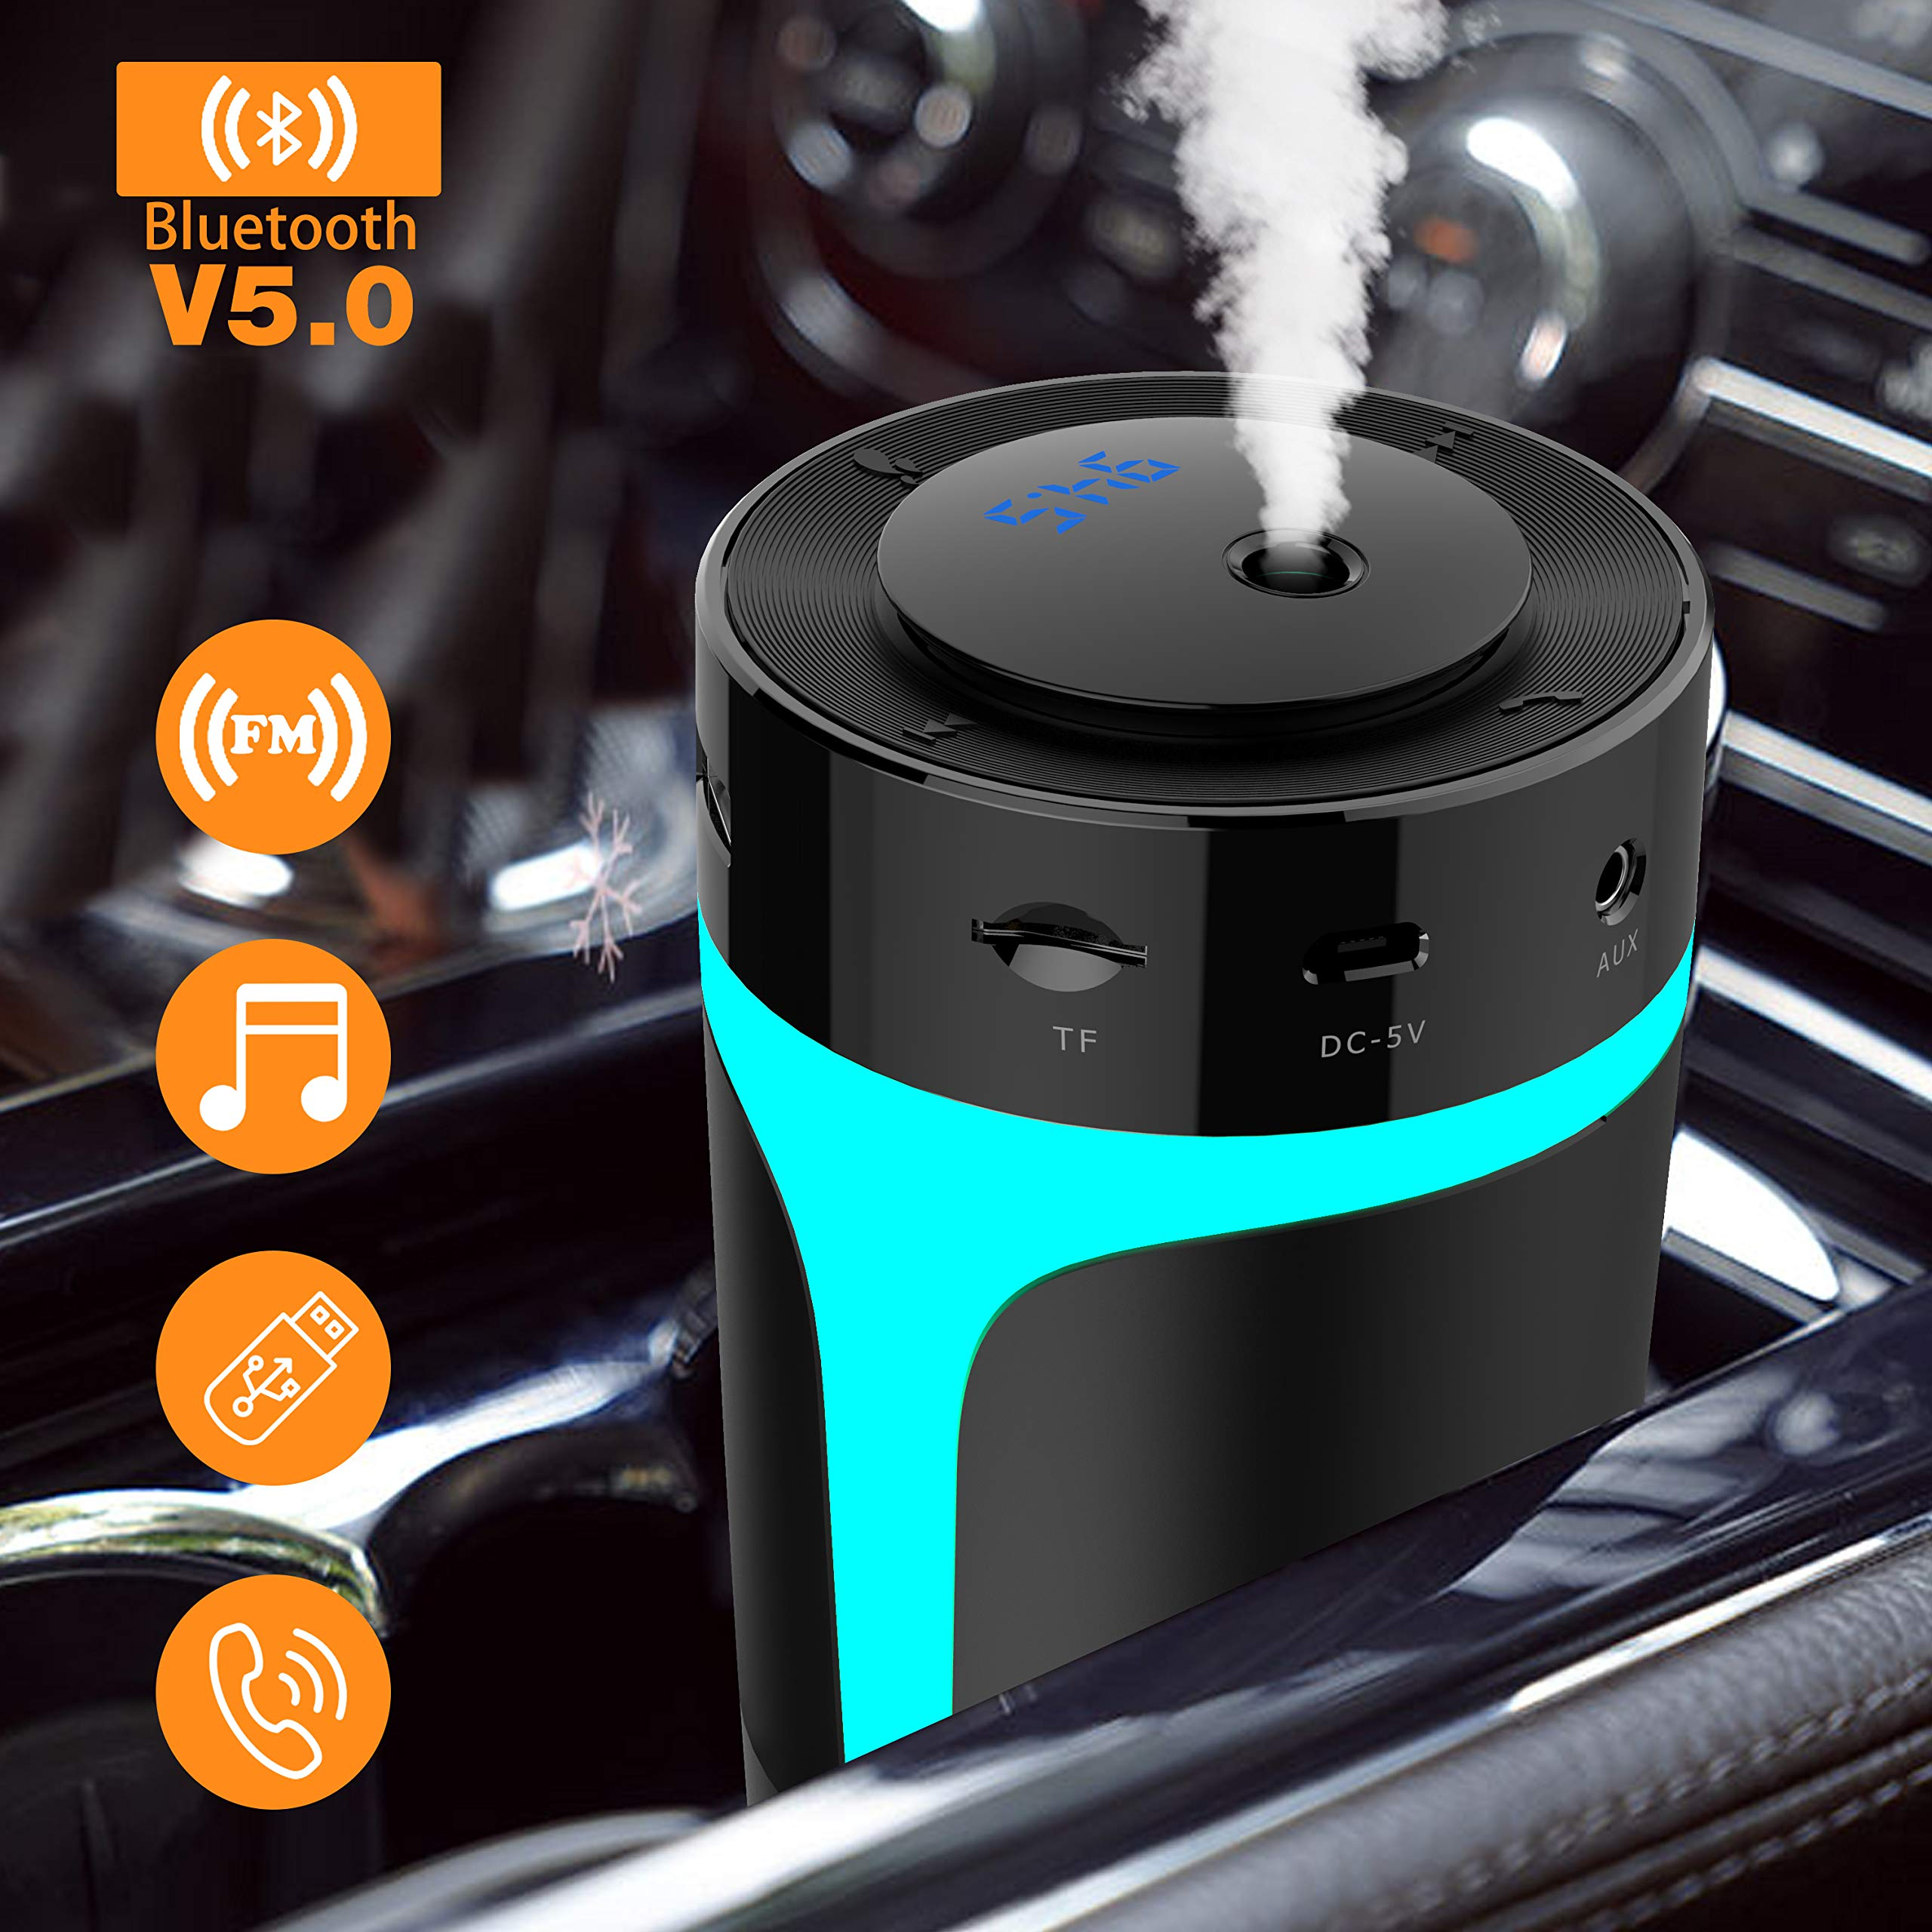 Bluetooth FM Transmitter for Car with USB Portable Car Humidifier,Wireless FM Transmitter Radio Adapter Car Kit with Hands Free Calling,USB Charging Ports,U Disk,TF Card,MP3 Music Player,7 Color,300ml